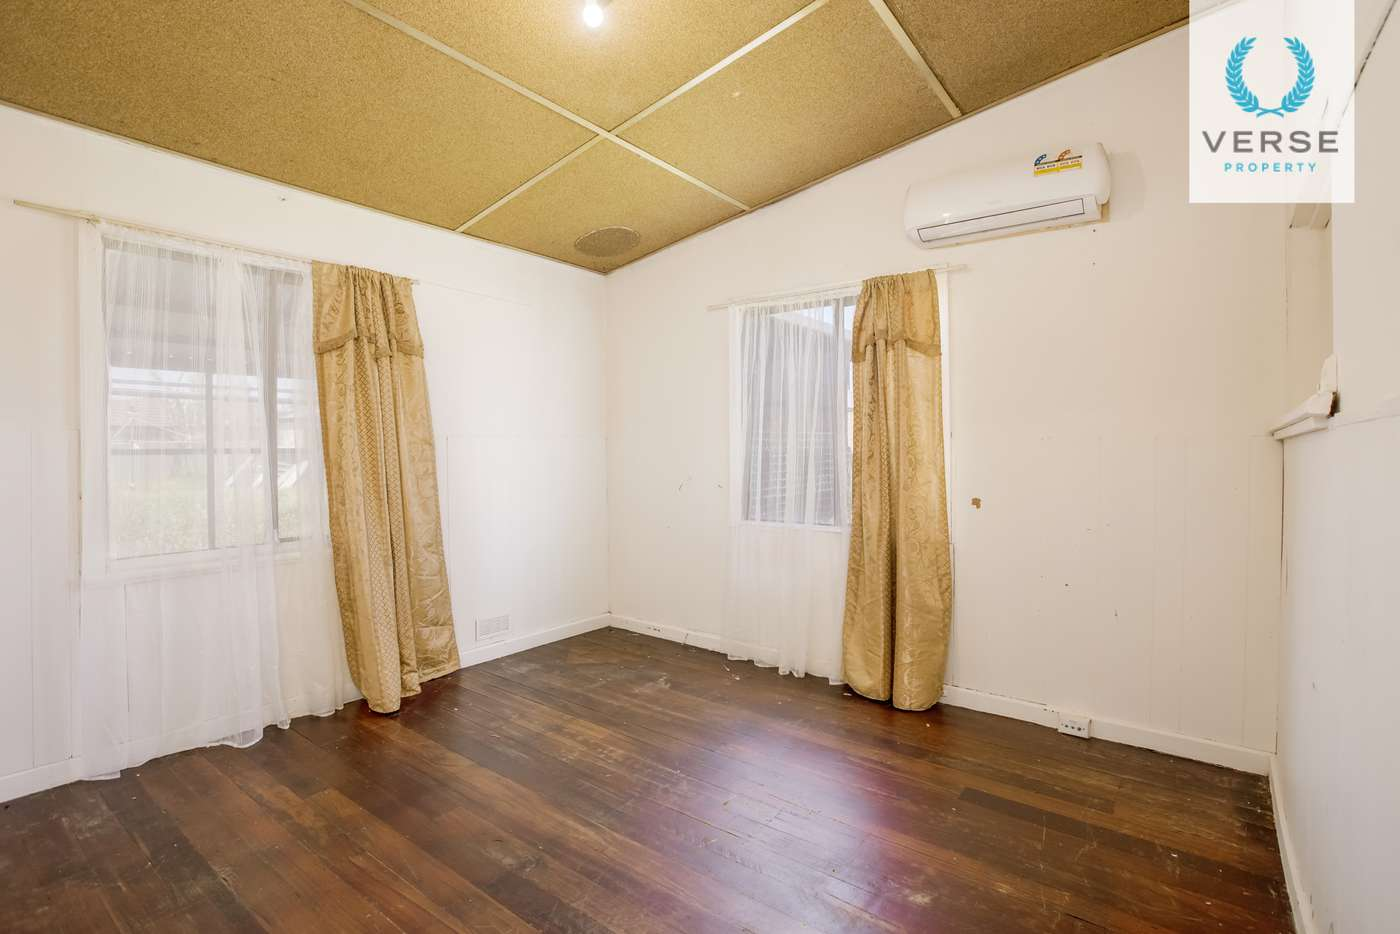 Sixth view of Homely house listing, 229 Wharf Street, Queens Park WA 6107